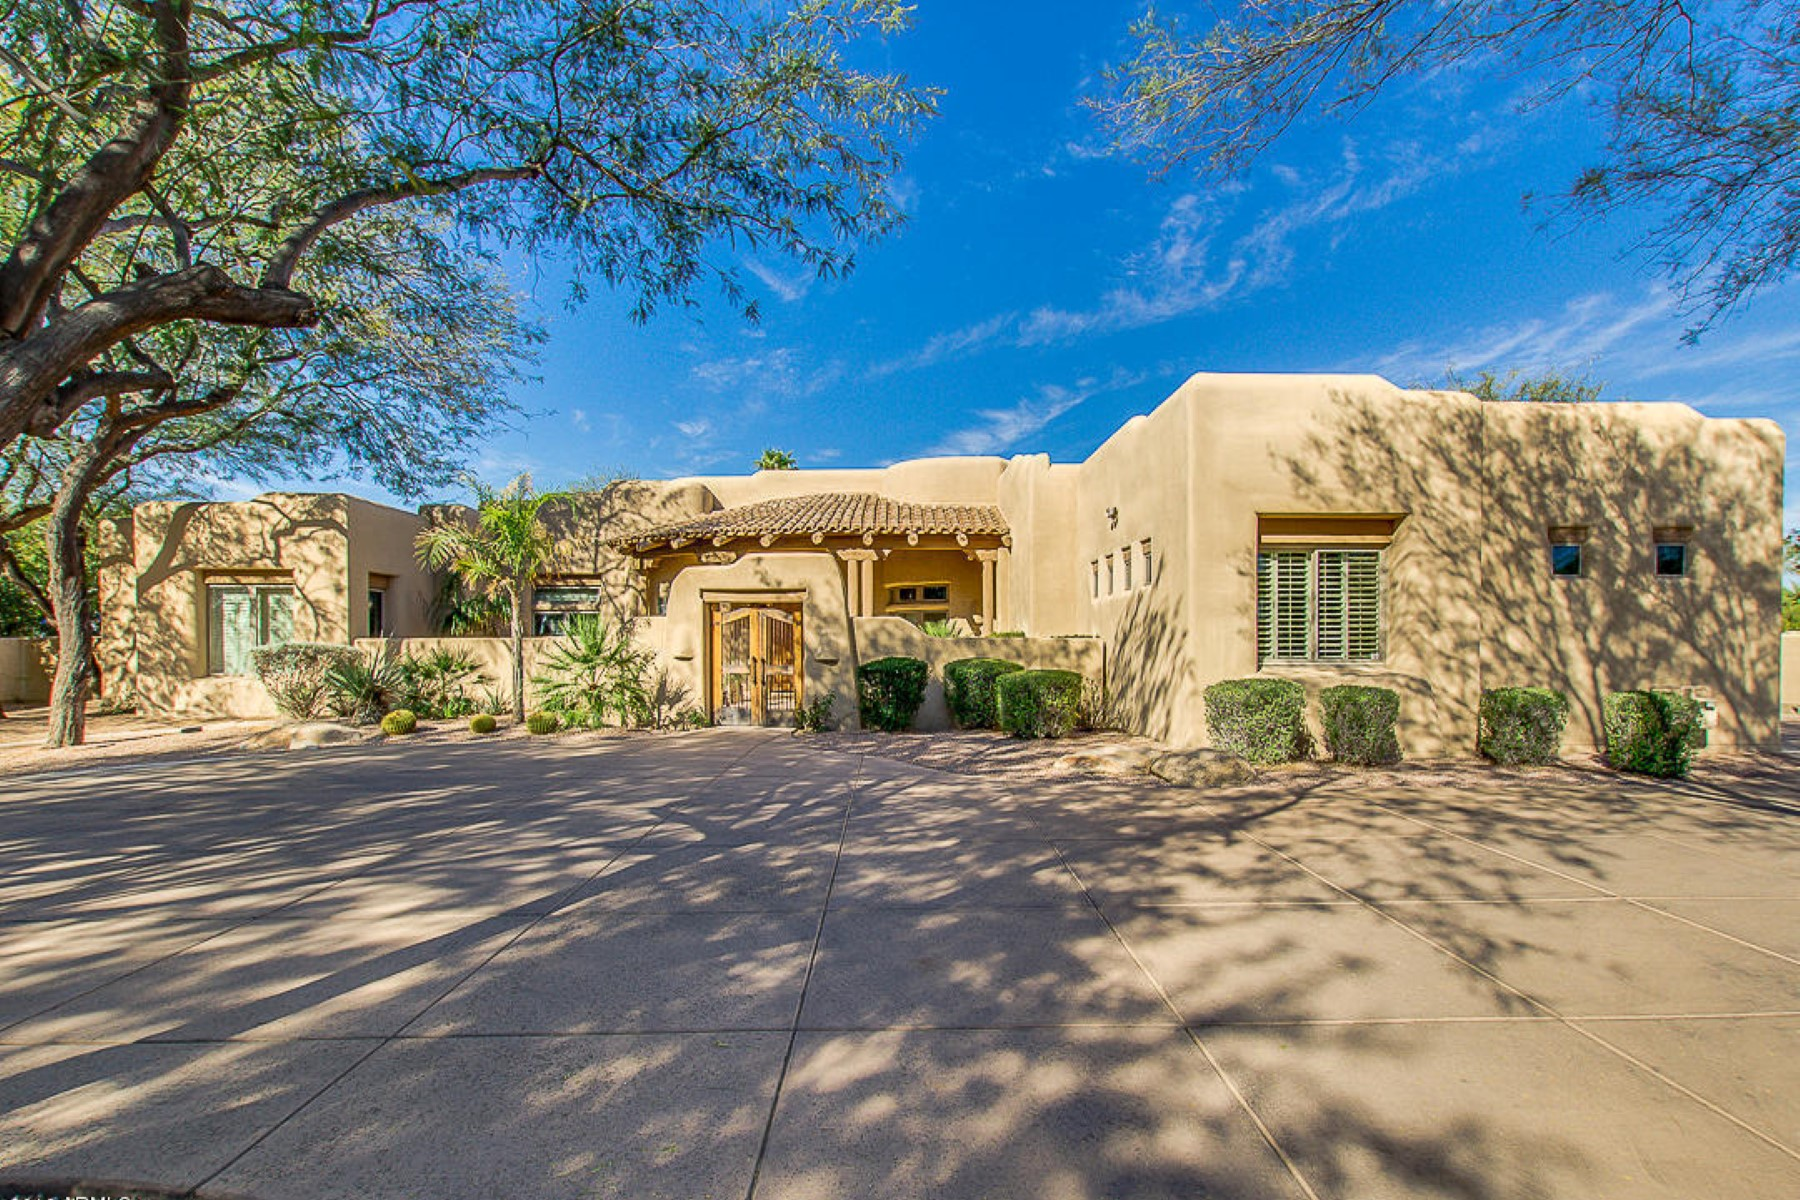 Single Family Home for Sale at Privately gated territorial style estate with old world charm 7318 N Mockingbird Ln Paradise Valley, Arizona, 85253 United States